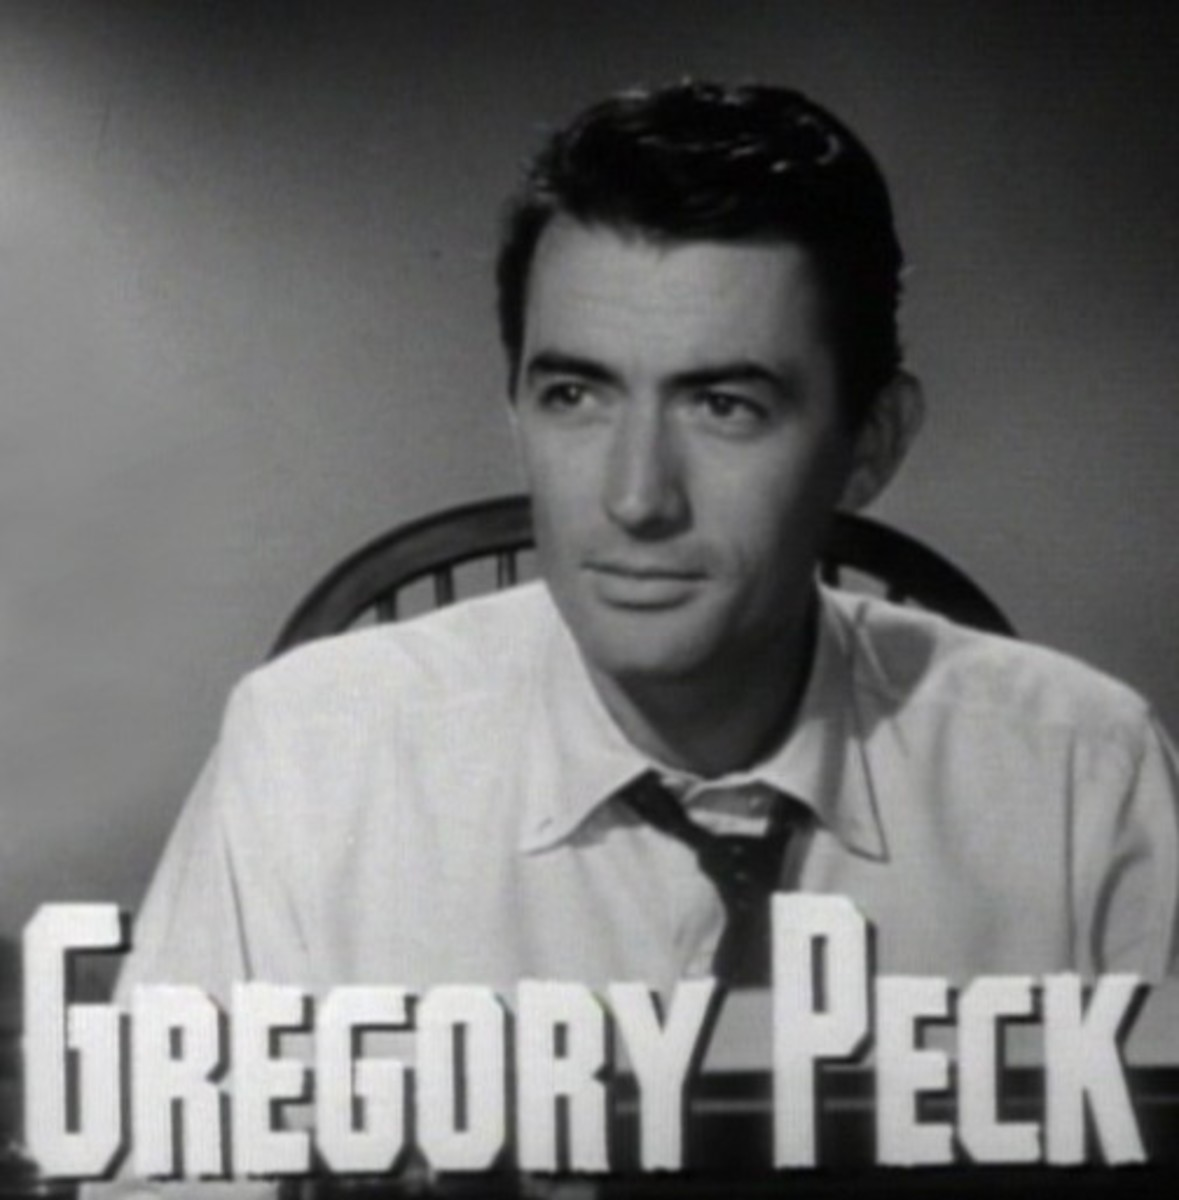 Gregory Peck in a screenshot from the trailer for the 1947 film Gentleman's Agreement